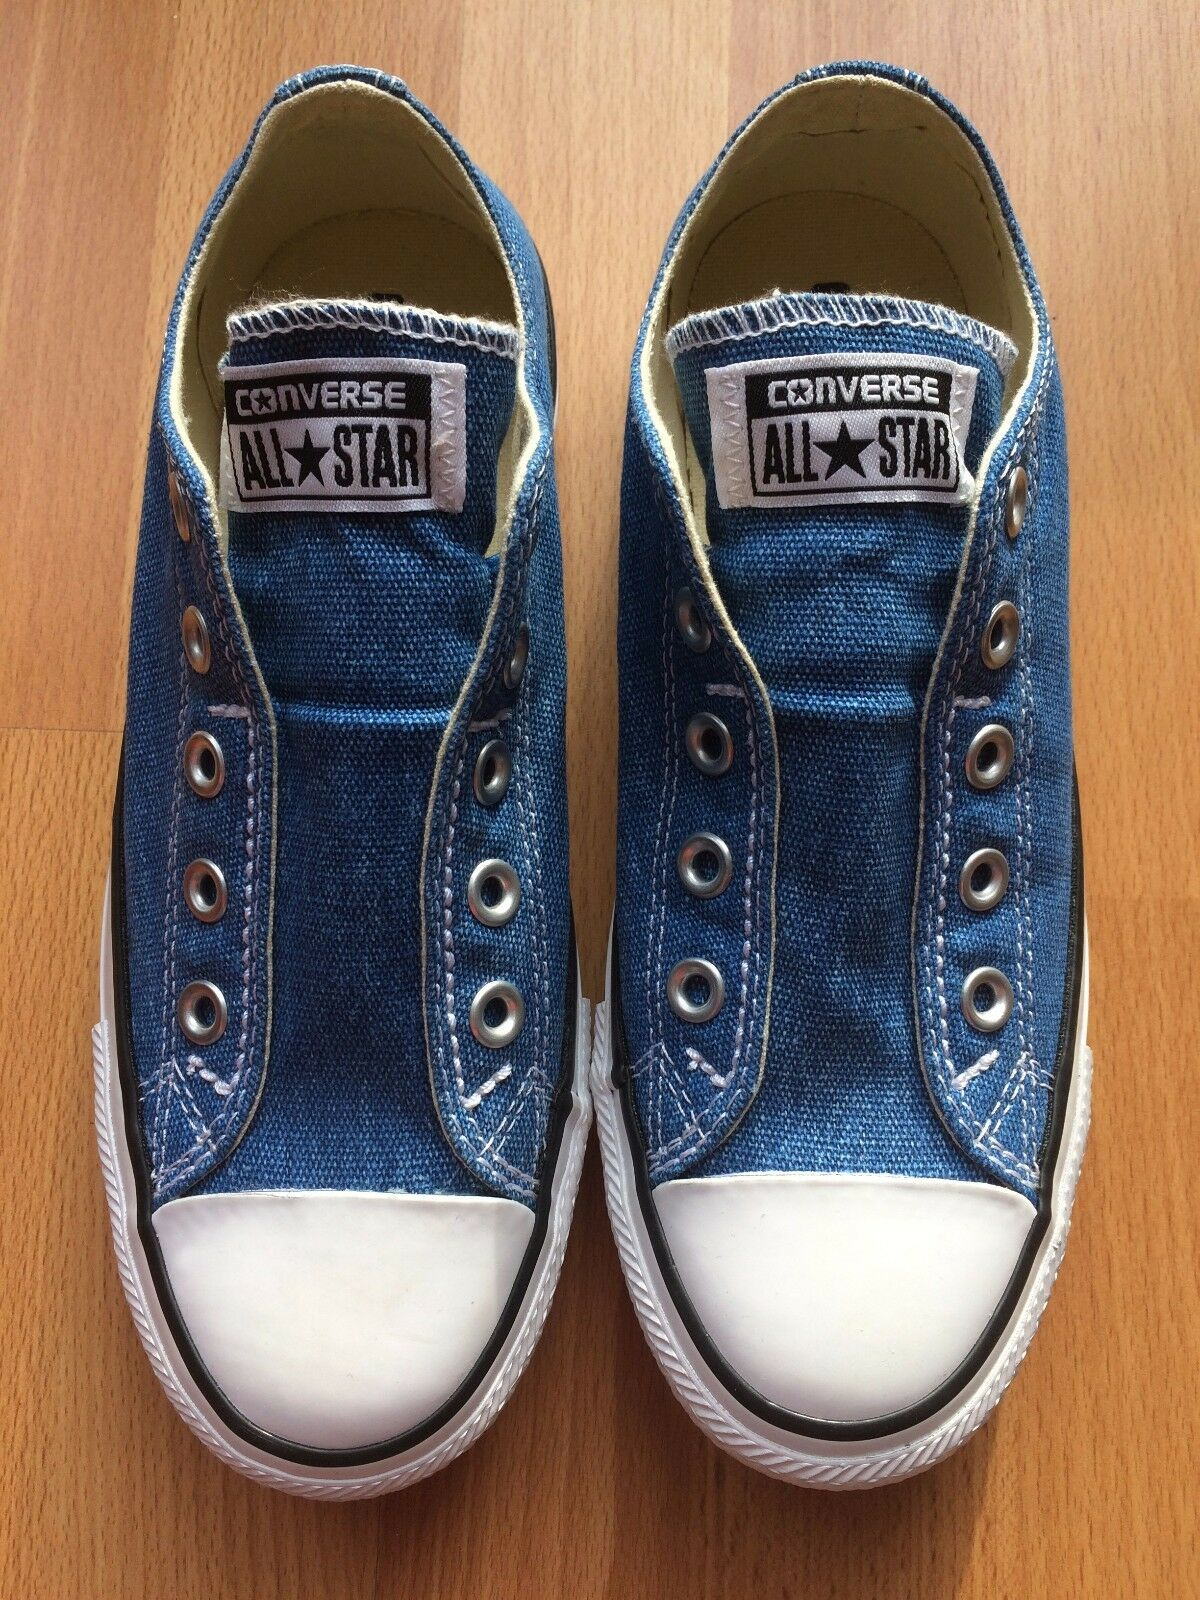 NEW TRAINERS REAL CONVERSE DENIM SLIP ON PUMPS TRAINERS NEW - SIZE UK 4 ef7f4f